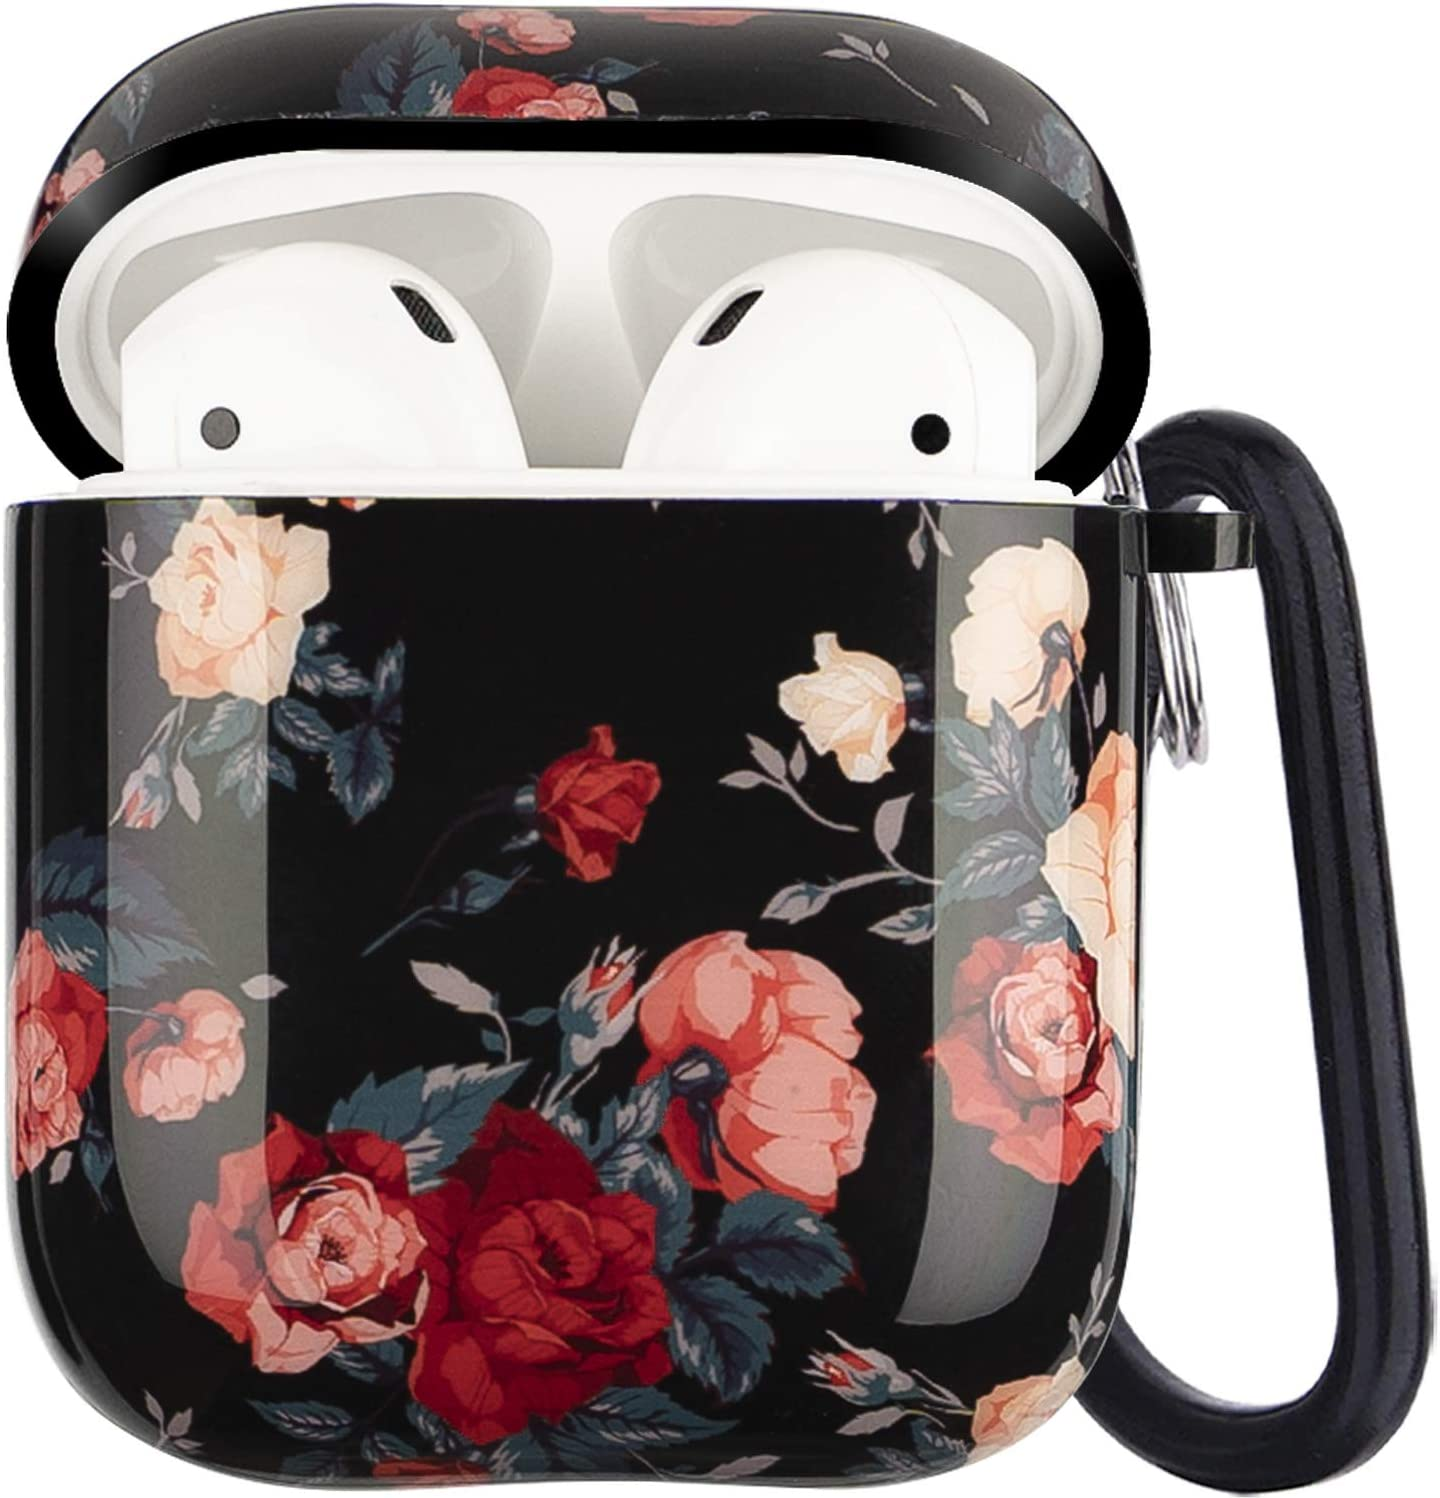 Airpods Case - LitoDream Cute Rose Flower Protective Hard Case Cover Skin Portable & Shockproof Women Girls with Keychain for Apple Airpods 2/1 Charging Case (Rose Flower)